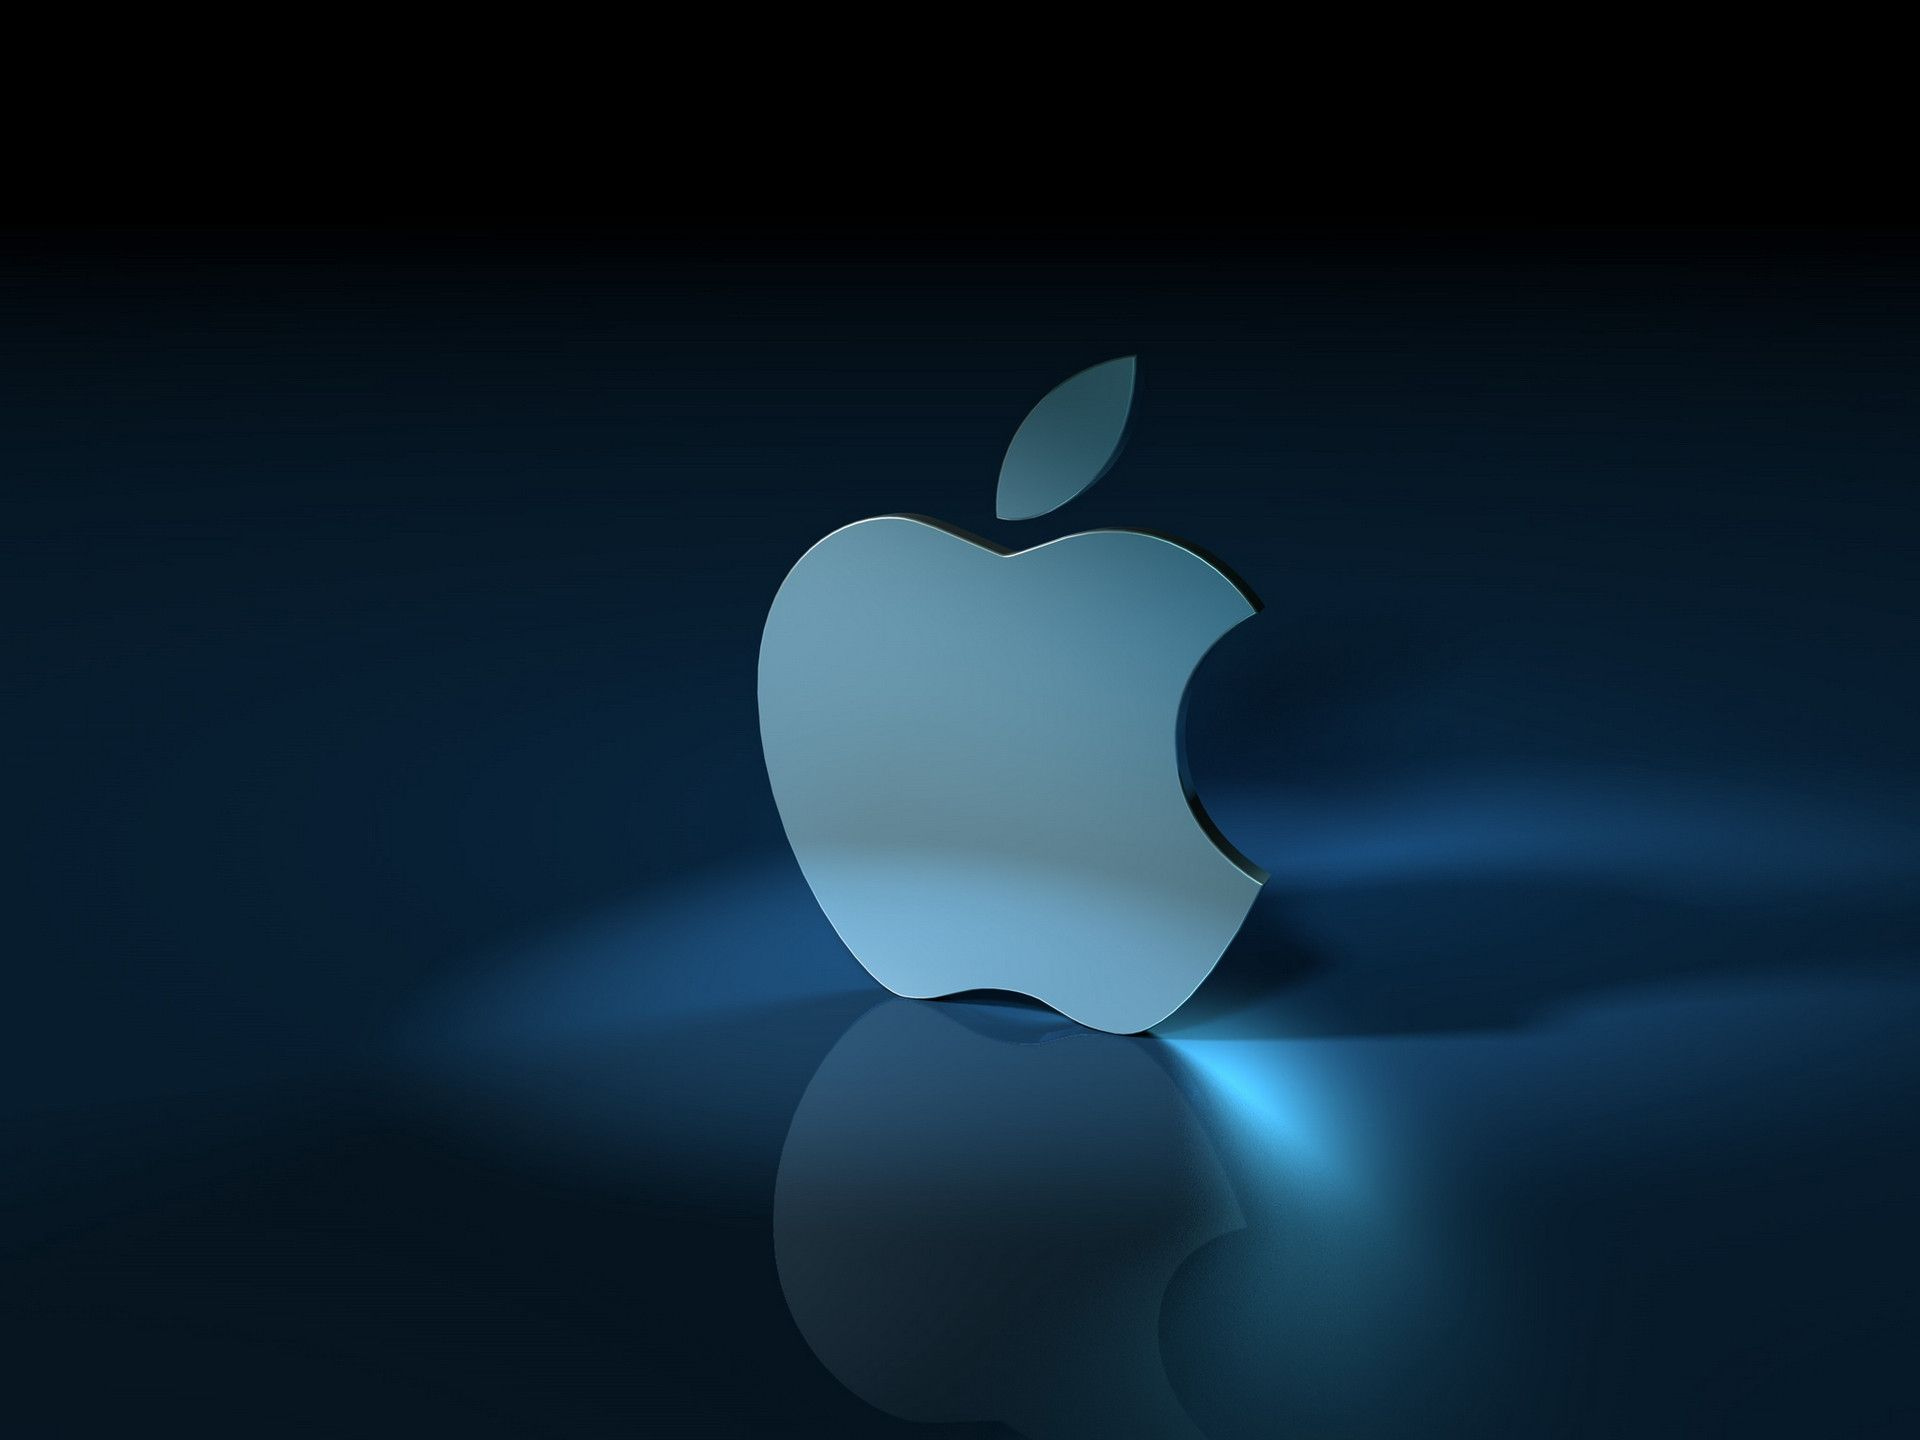 Apple 3D Logo Wallpaper